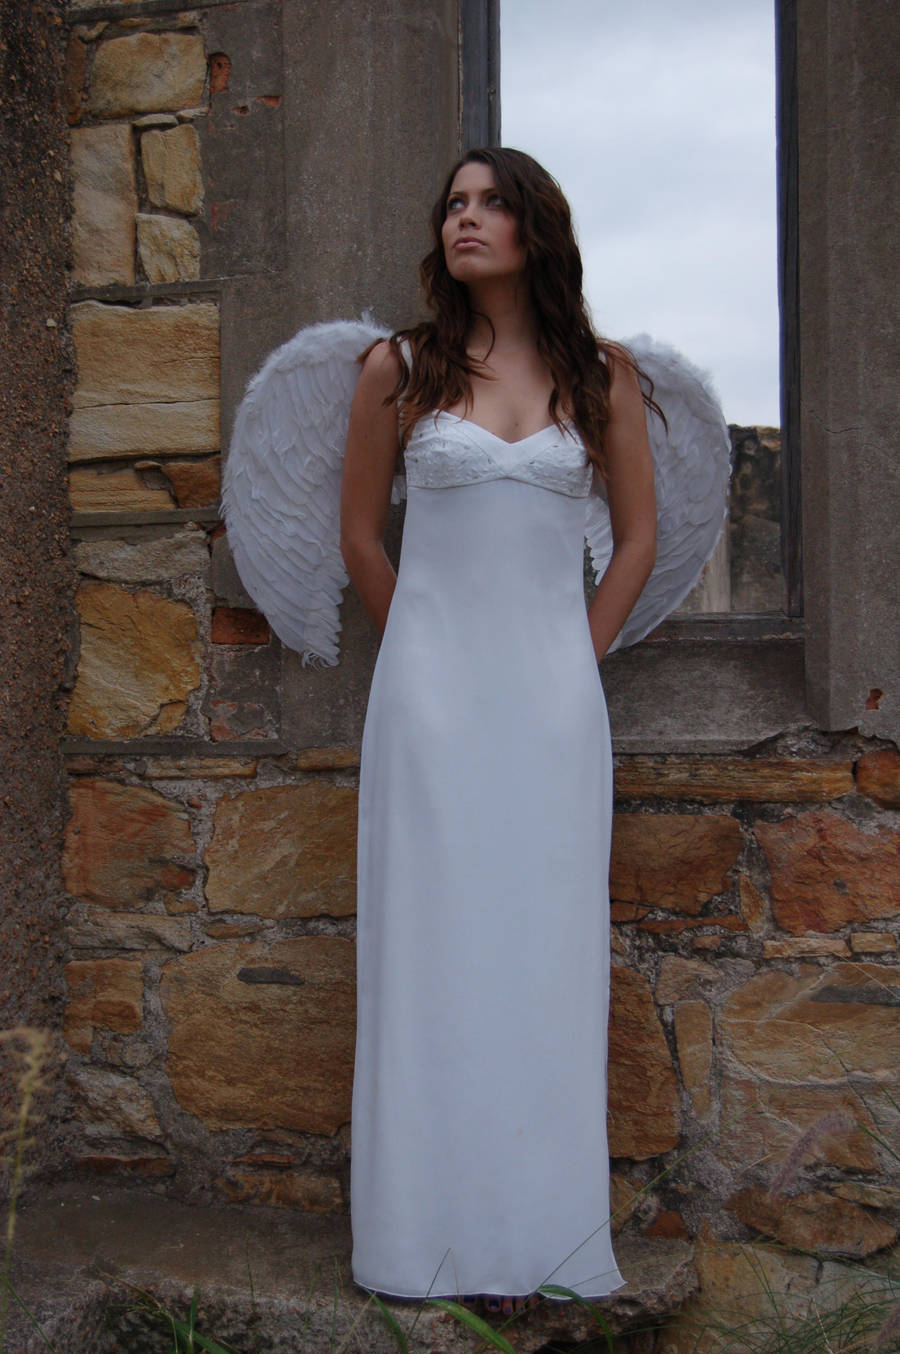 Posed Angel 13 by Storms-Stock